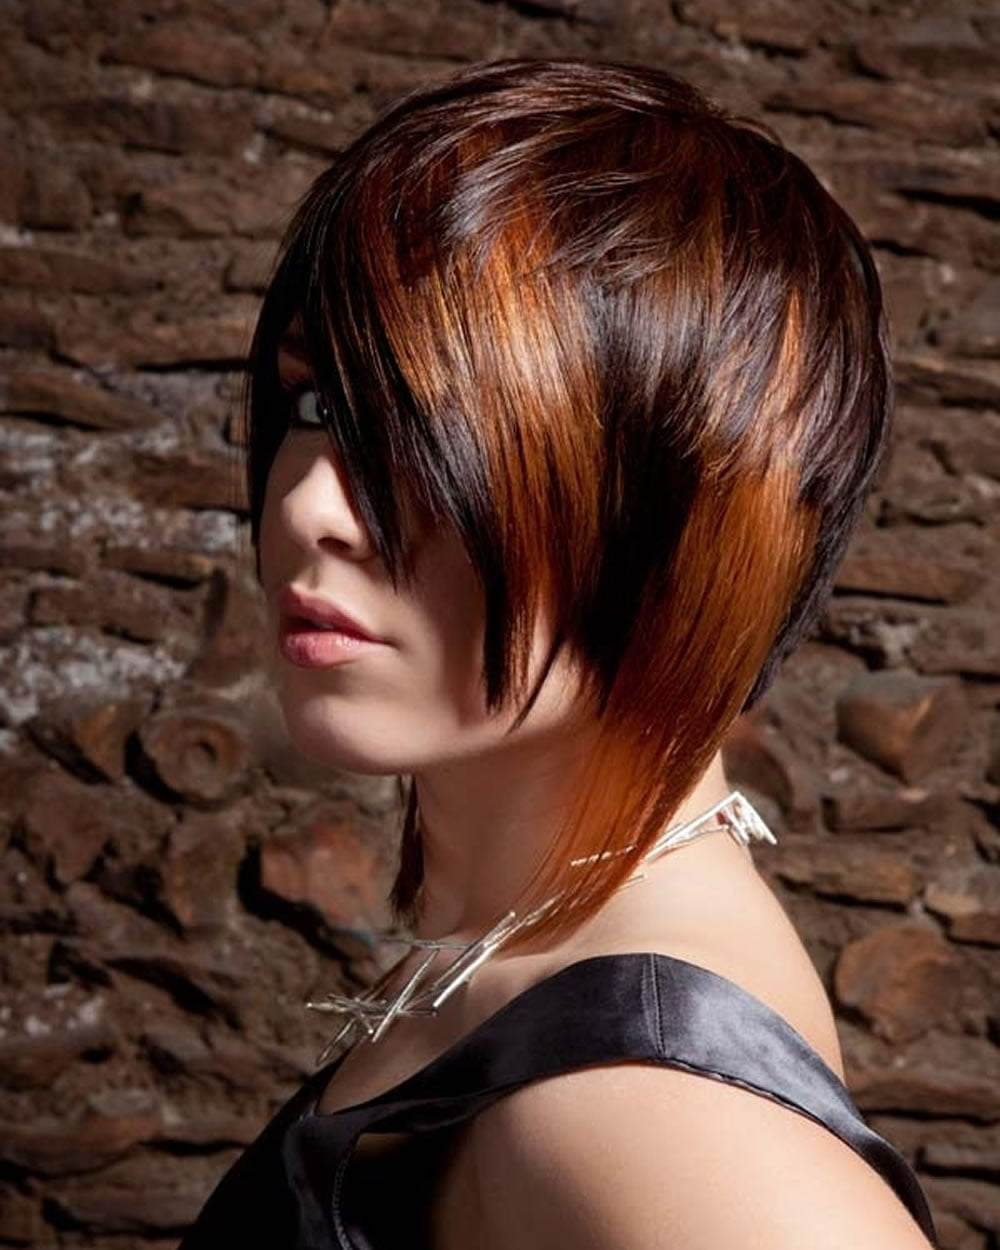 Newest Hairstyles u0026 Haircuts and Hair Colors for Short Hair 2018-2019 u2013 Page 5 u2013 HAIRSTYLES